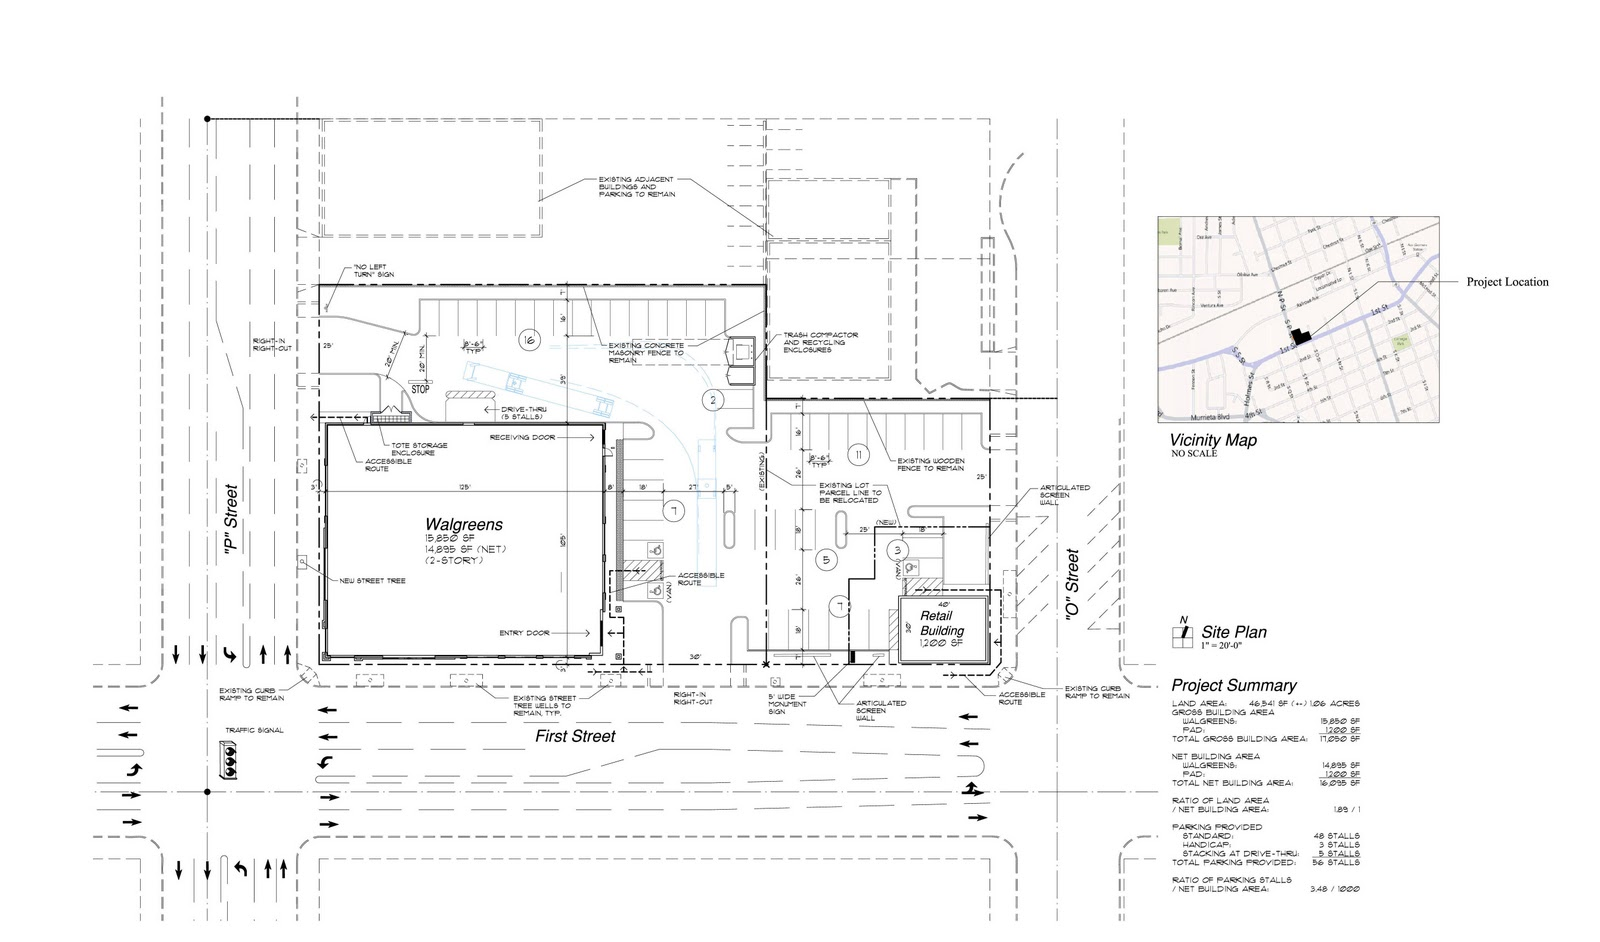 Jerold l dougal architect 31st walgreens submitted for for Building site plan